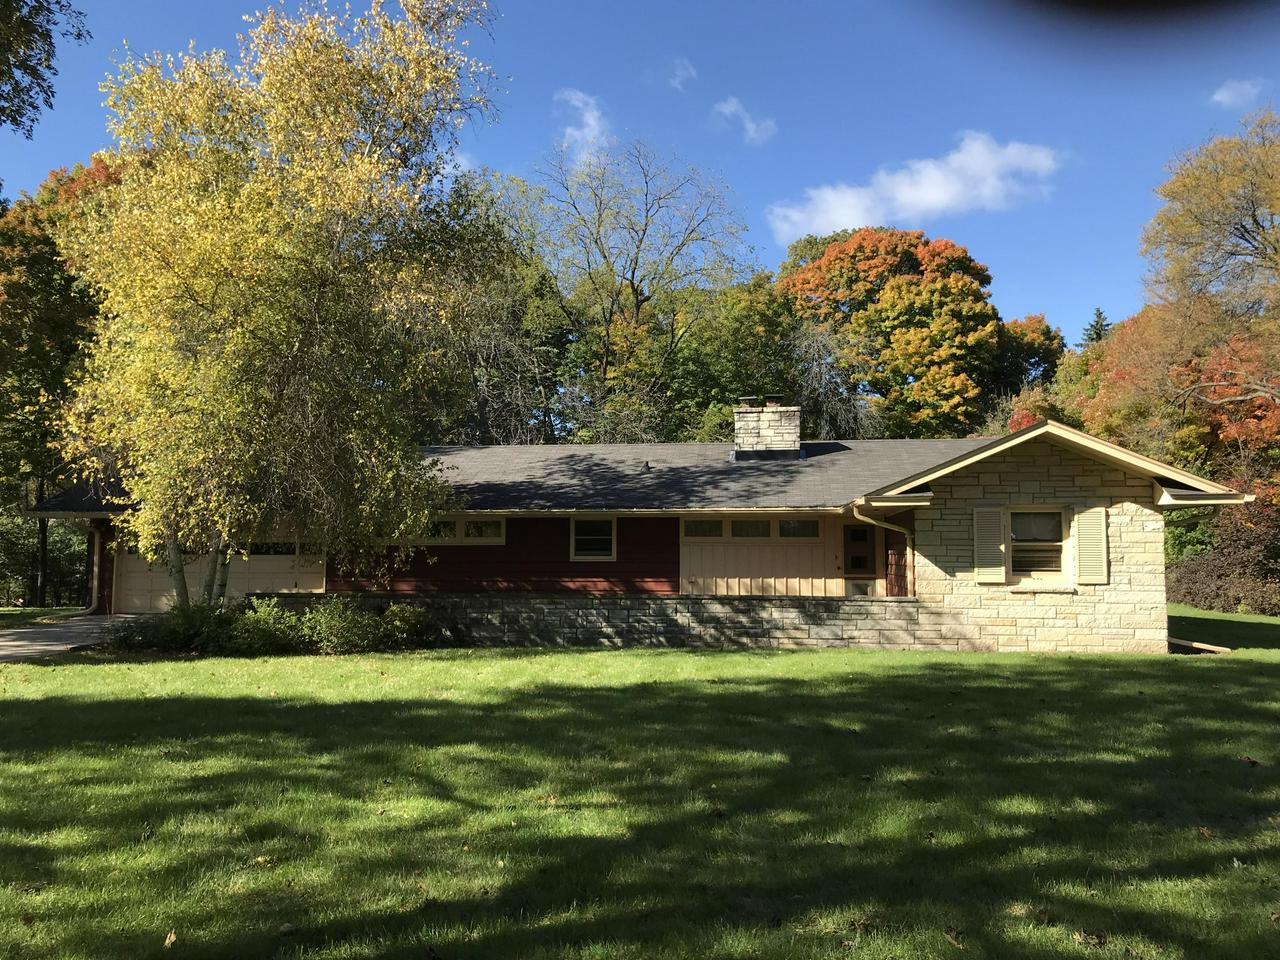 Rare opportunity to own a property in Brookfield, at such a affordable price! Over 1300 sq feet on almost a acre. Living room with natural fireplace and large windows to overlook your treed backyard. Kitchen has a snack bar and all appliances included .Large dining area for holiday gatherings.  Family room offers additional living space that leads to your private patio. First floor laundry with washer and dryer included.  Two generous sized bedrooms. Plenty of closets for your storage needs. Attached two car garage and shed. Make this home yours for the holidays!